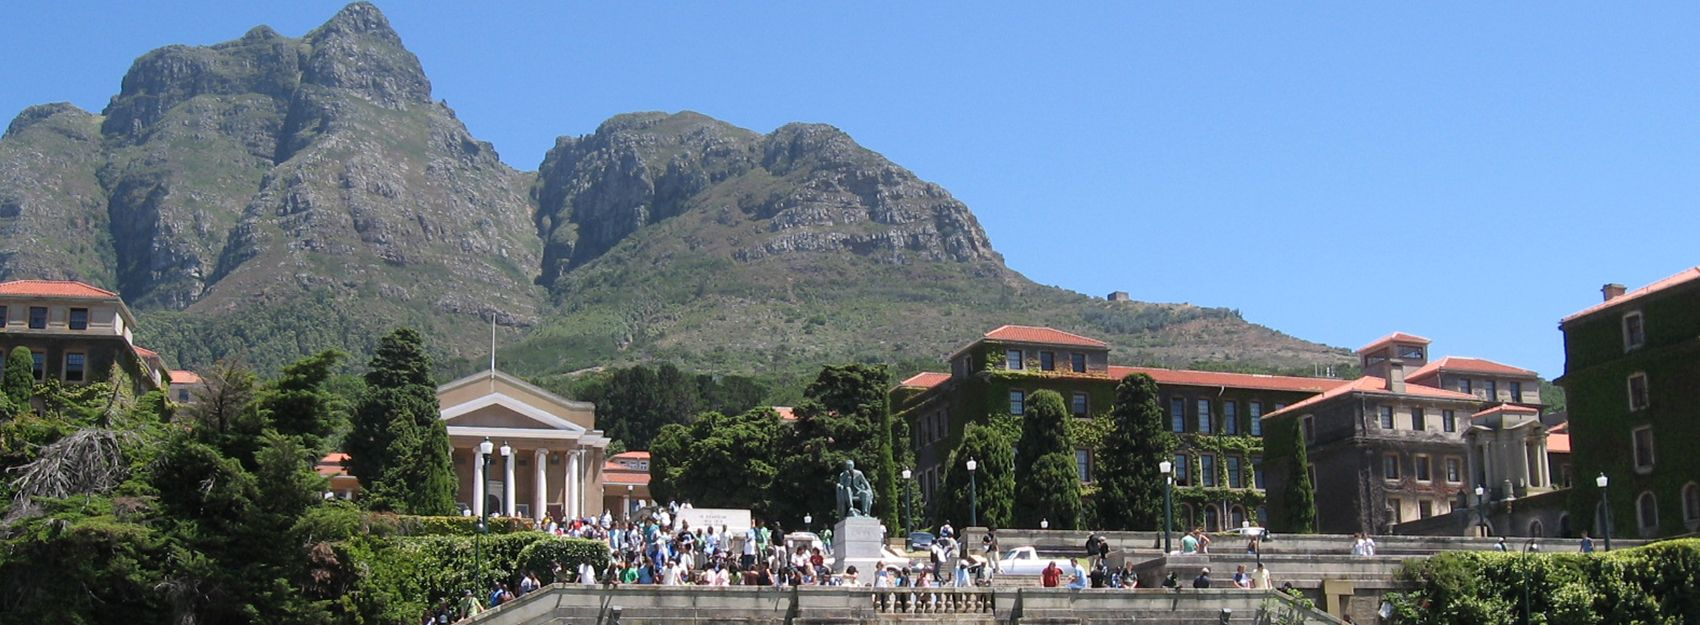 Cape Town study abroad student photo of the campus